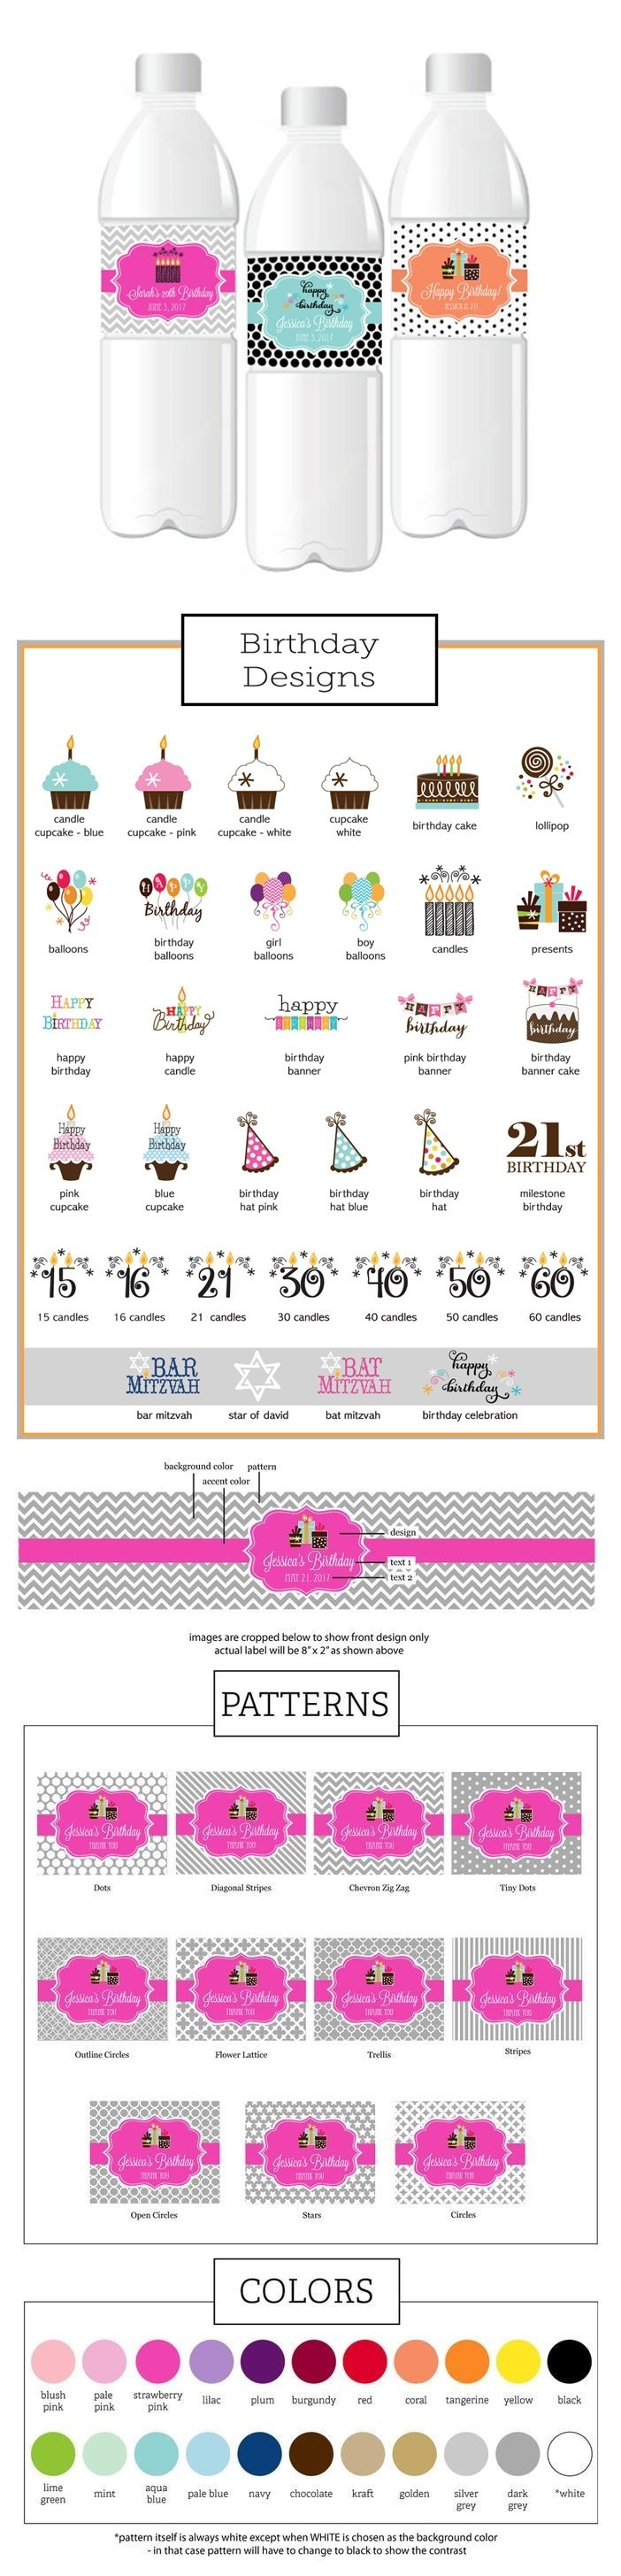 Event Blossom Personalized Birthday Water Bottle Labels (34 Designs)